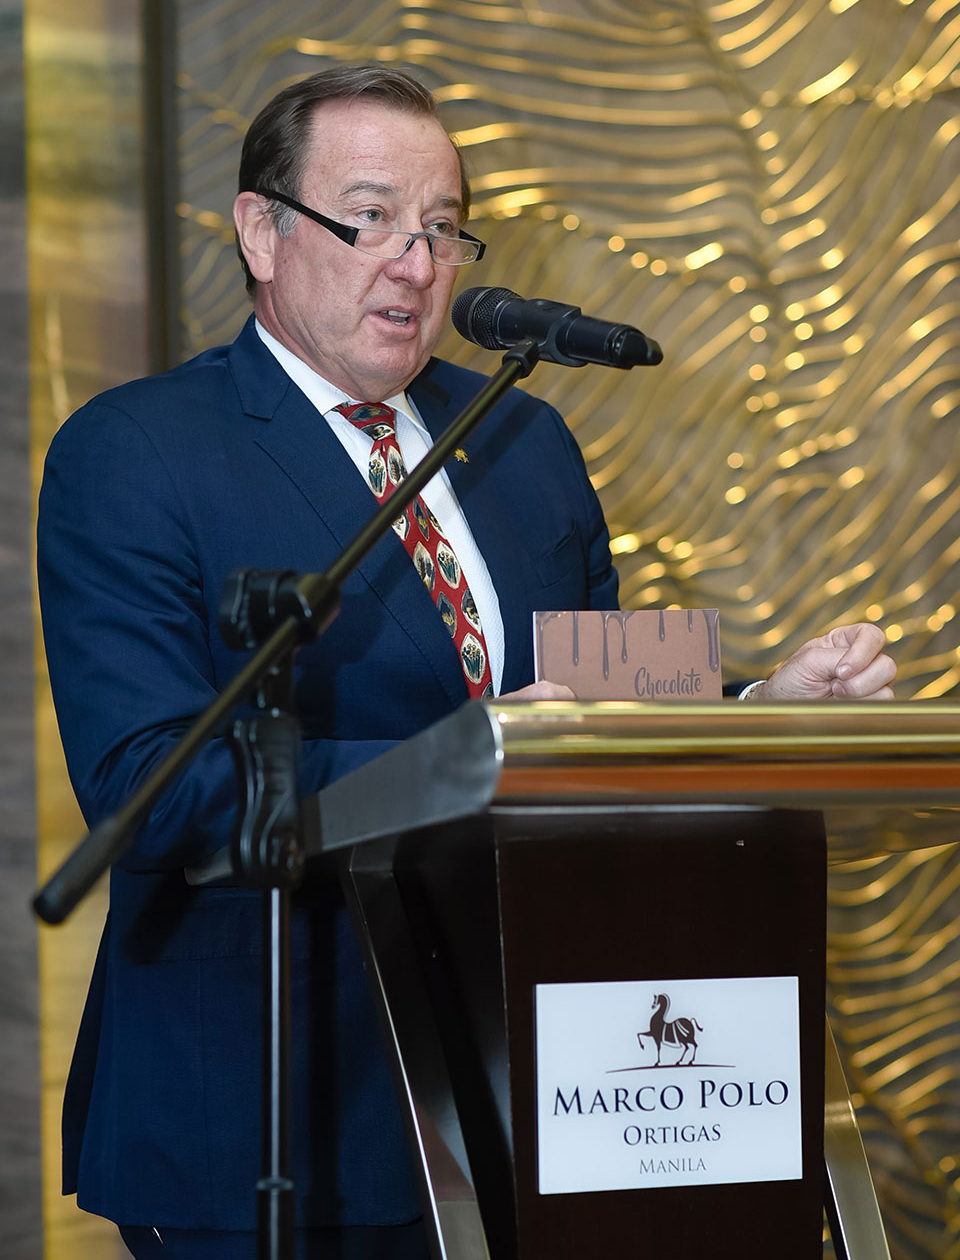 Marco Polo Ortigas' general manager Frank Reichenbach welcoming guests